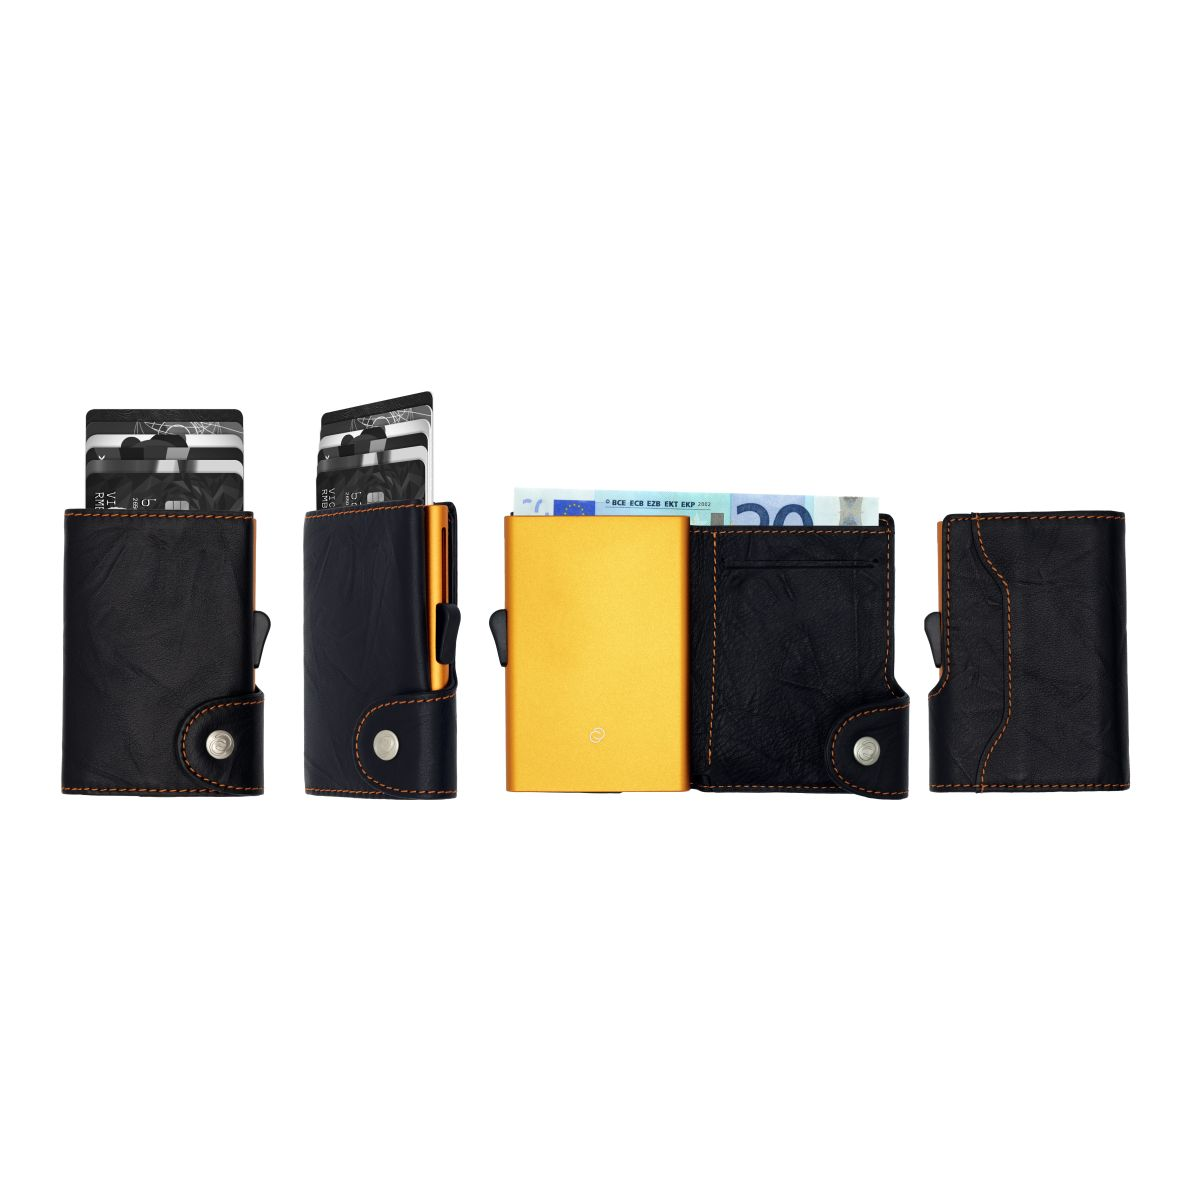 C-Secure Aluminum Card Holder with Genuine Leather - Black / Orange